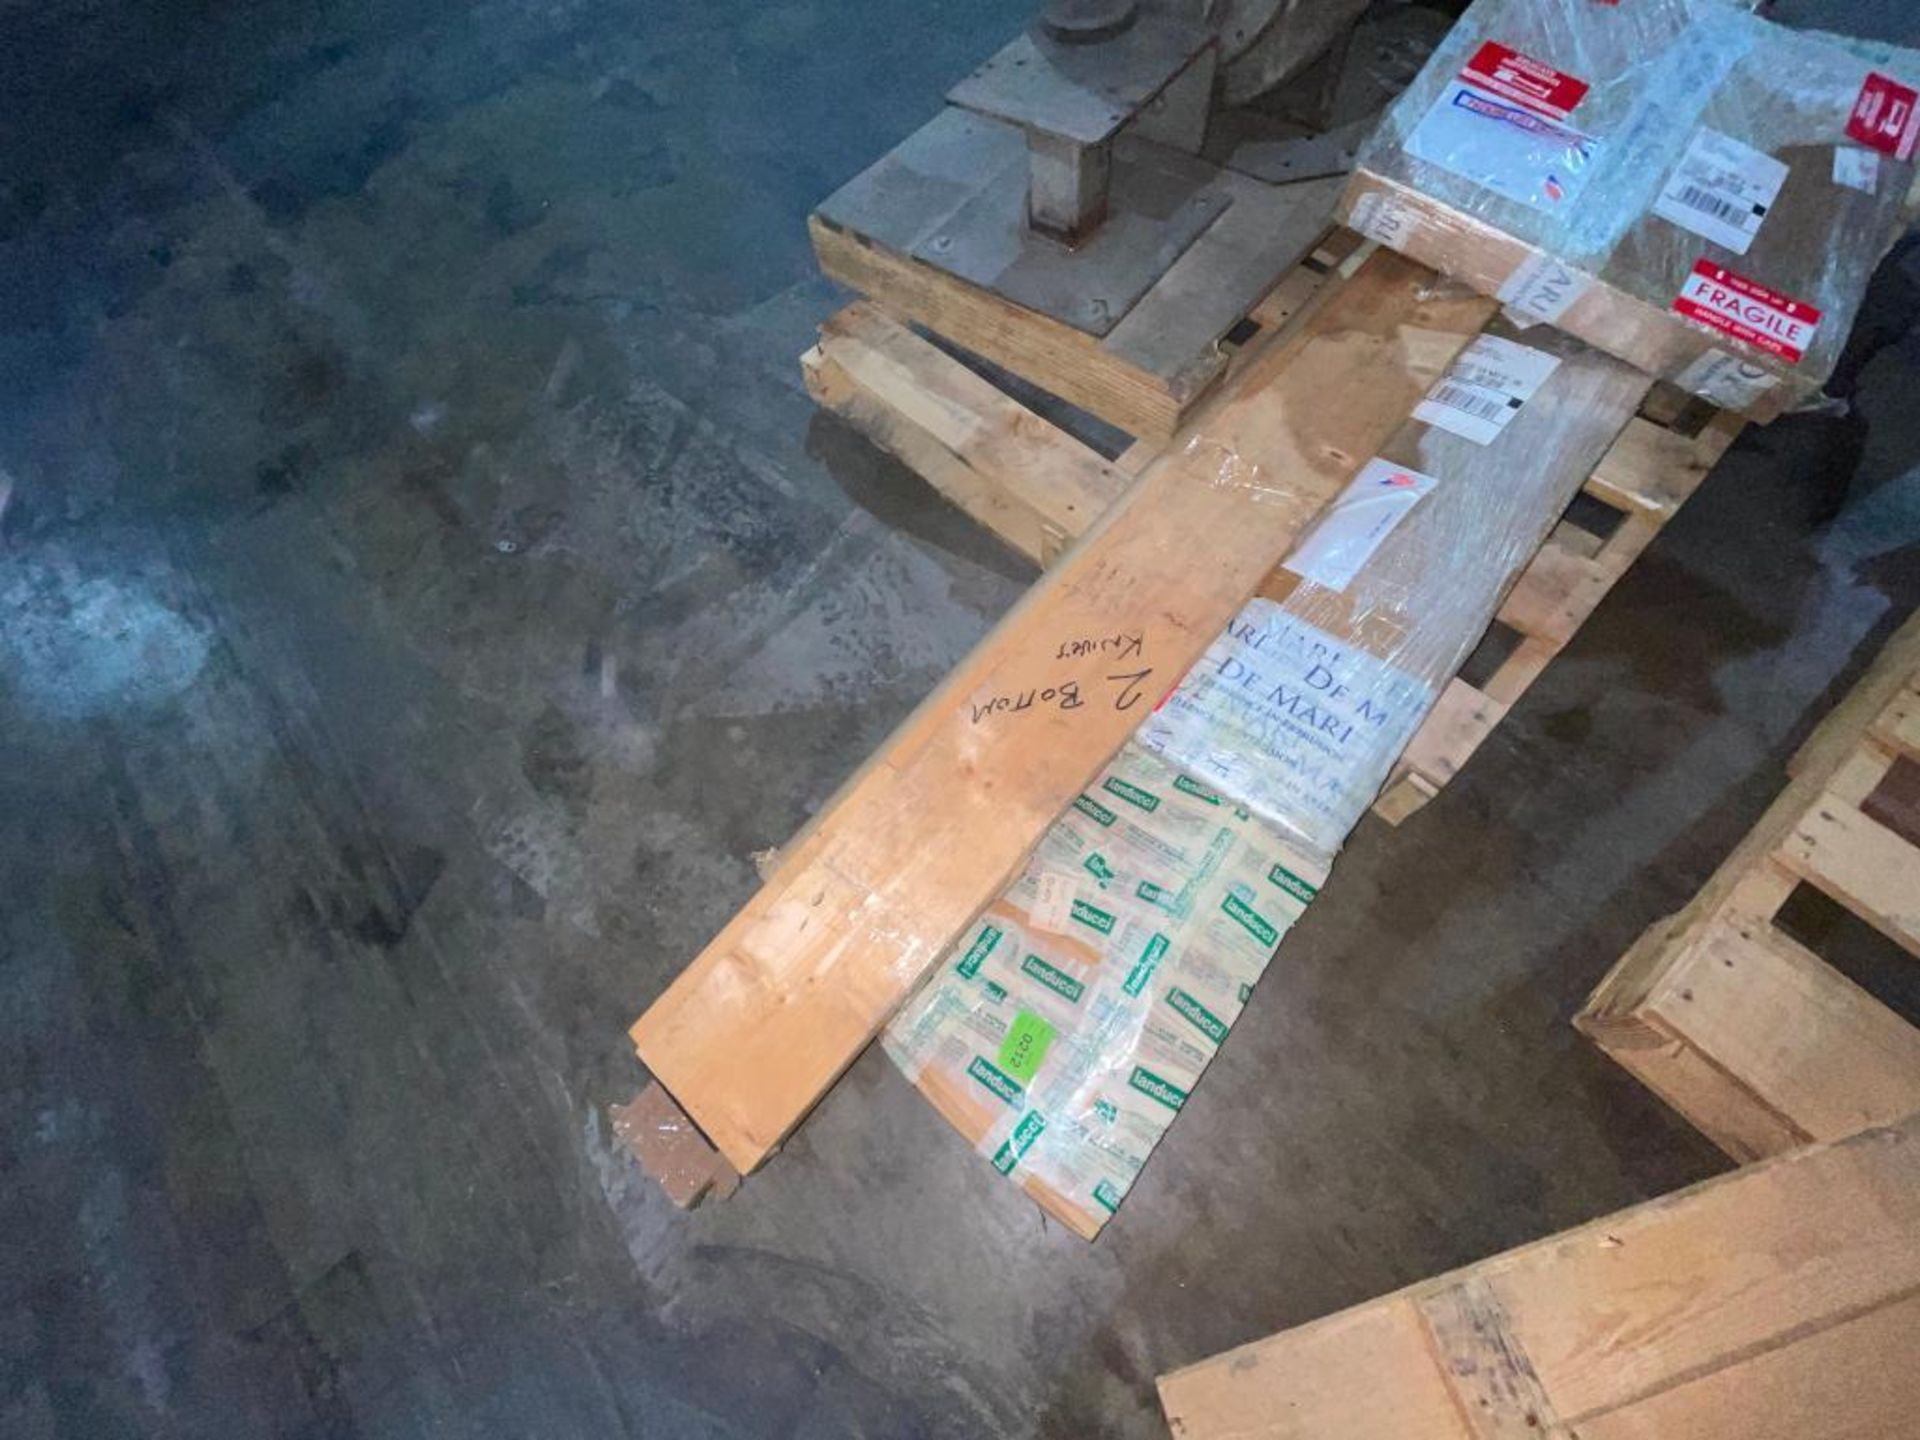 pallet of new and rebuilt knives - Image 4 of 7